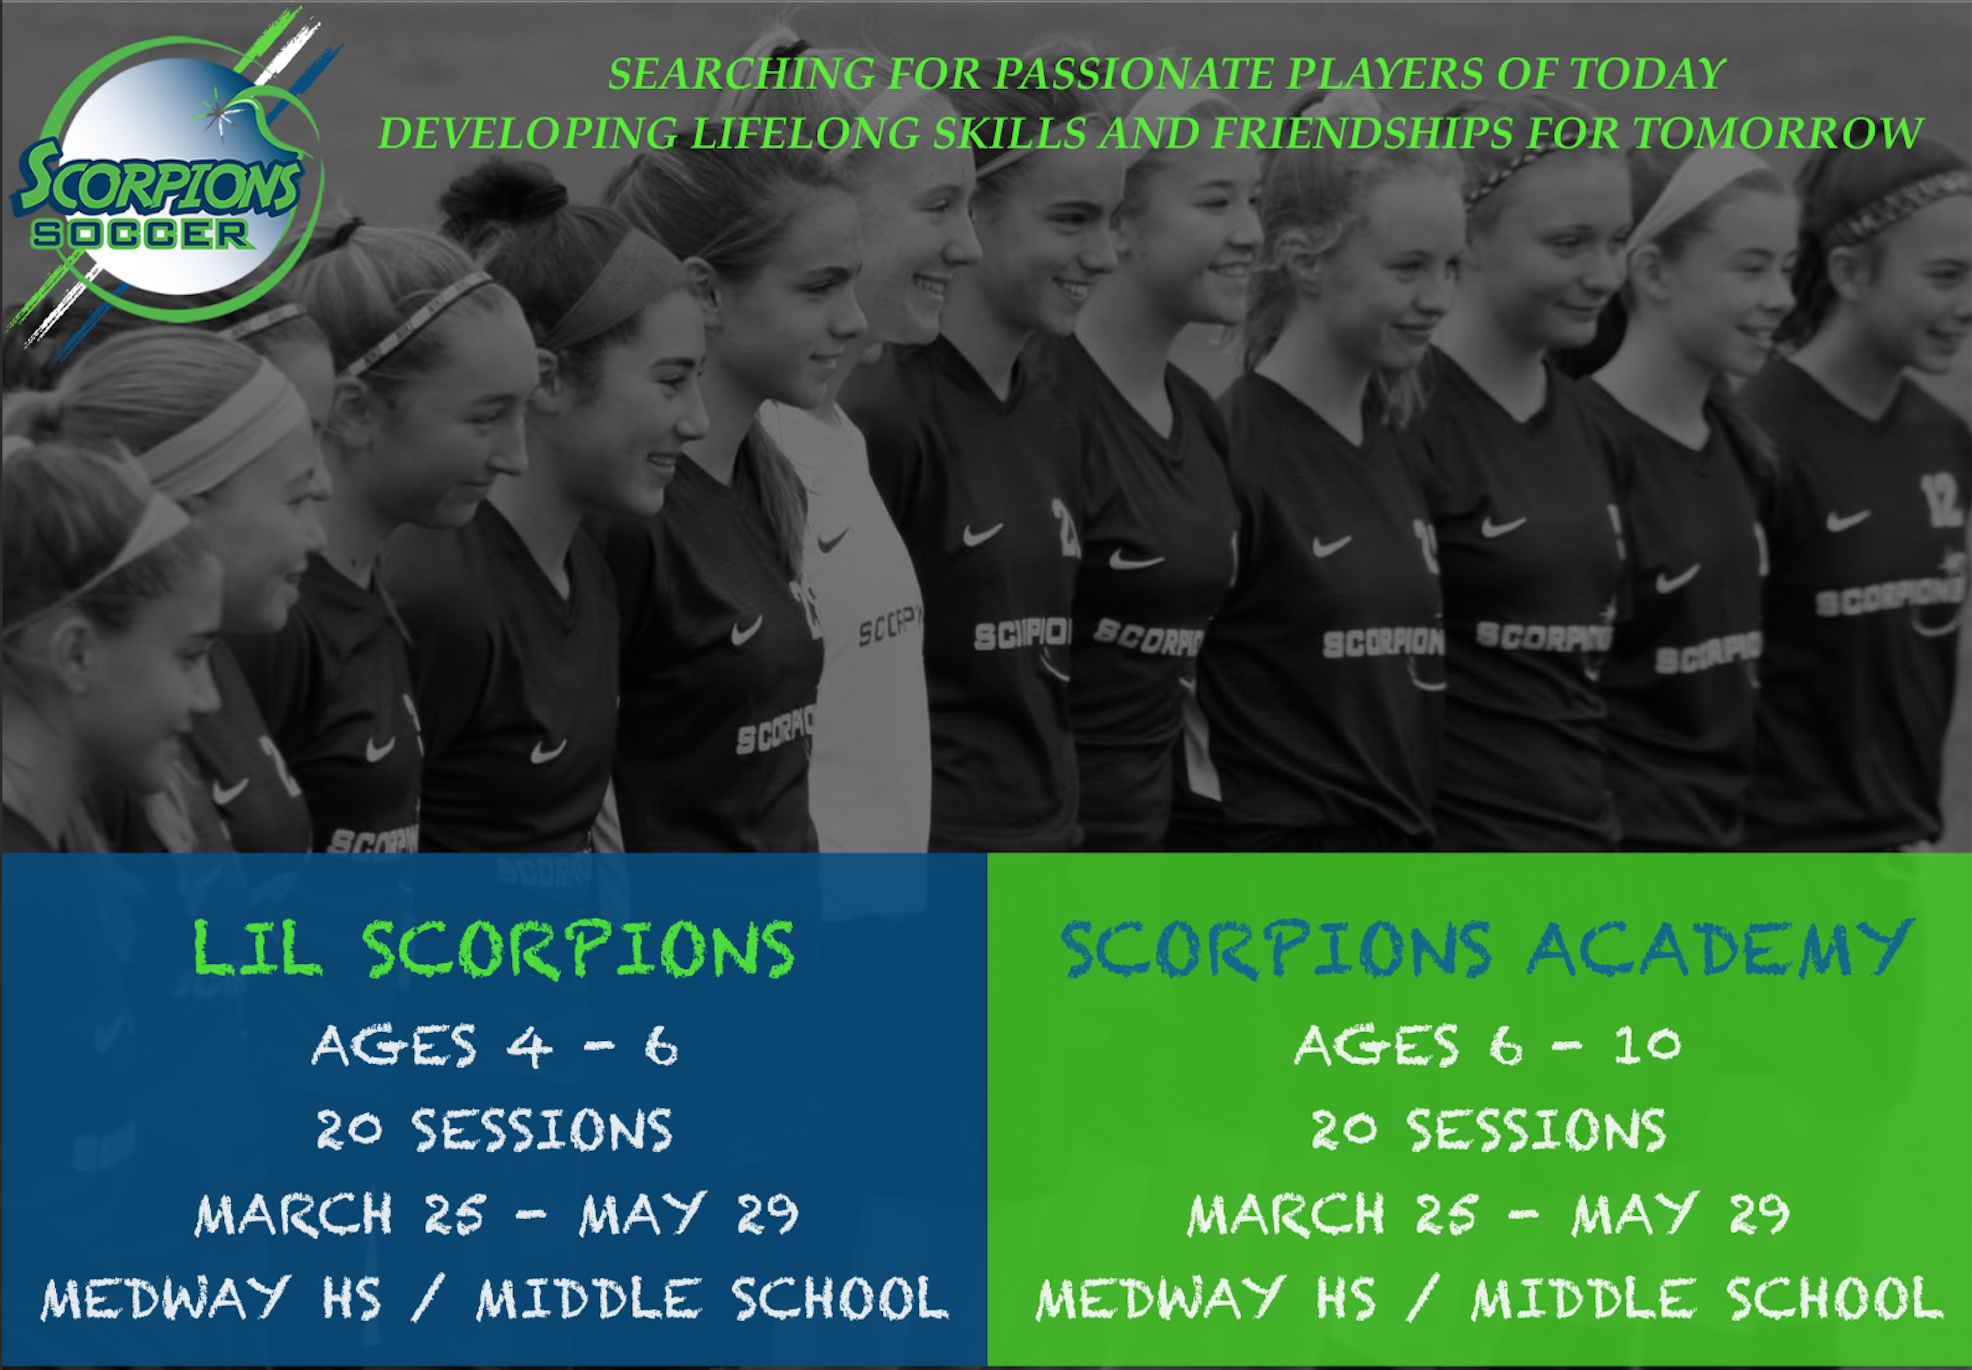 METROWEST & EAST REGION SCORPIONS ACADEMY & LIL SCORPIONS ANNOUNCED !